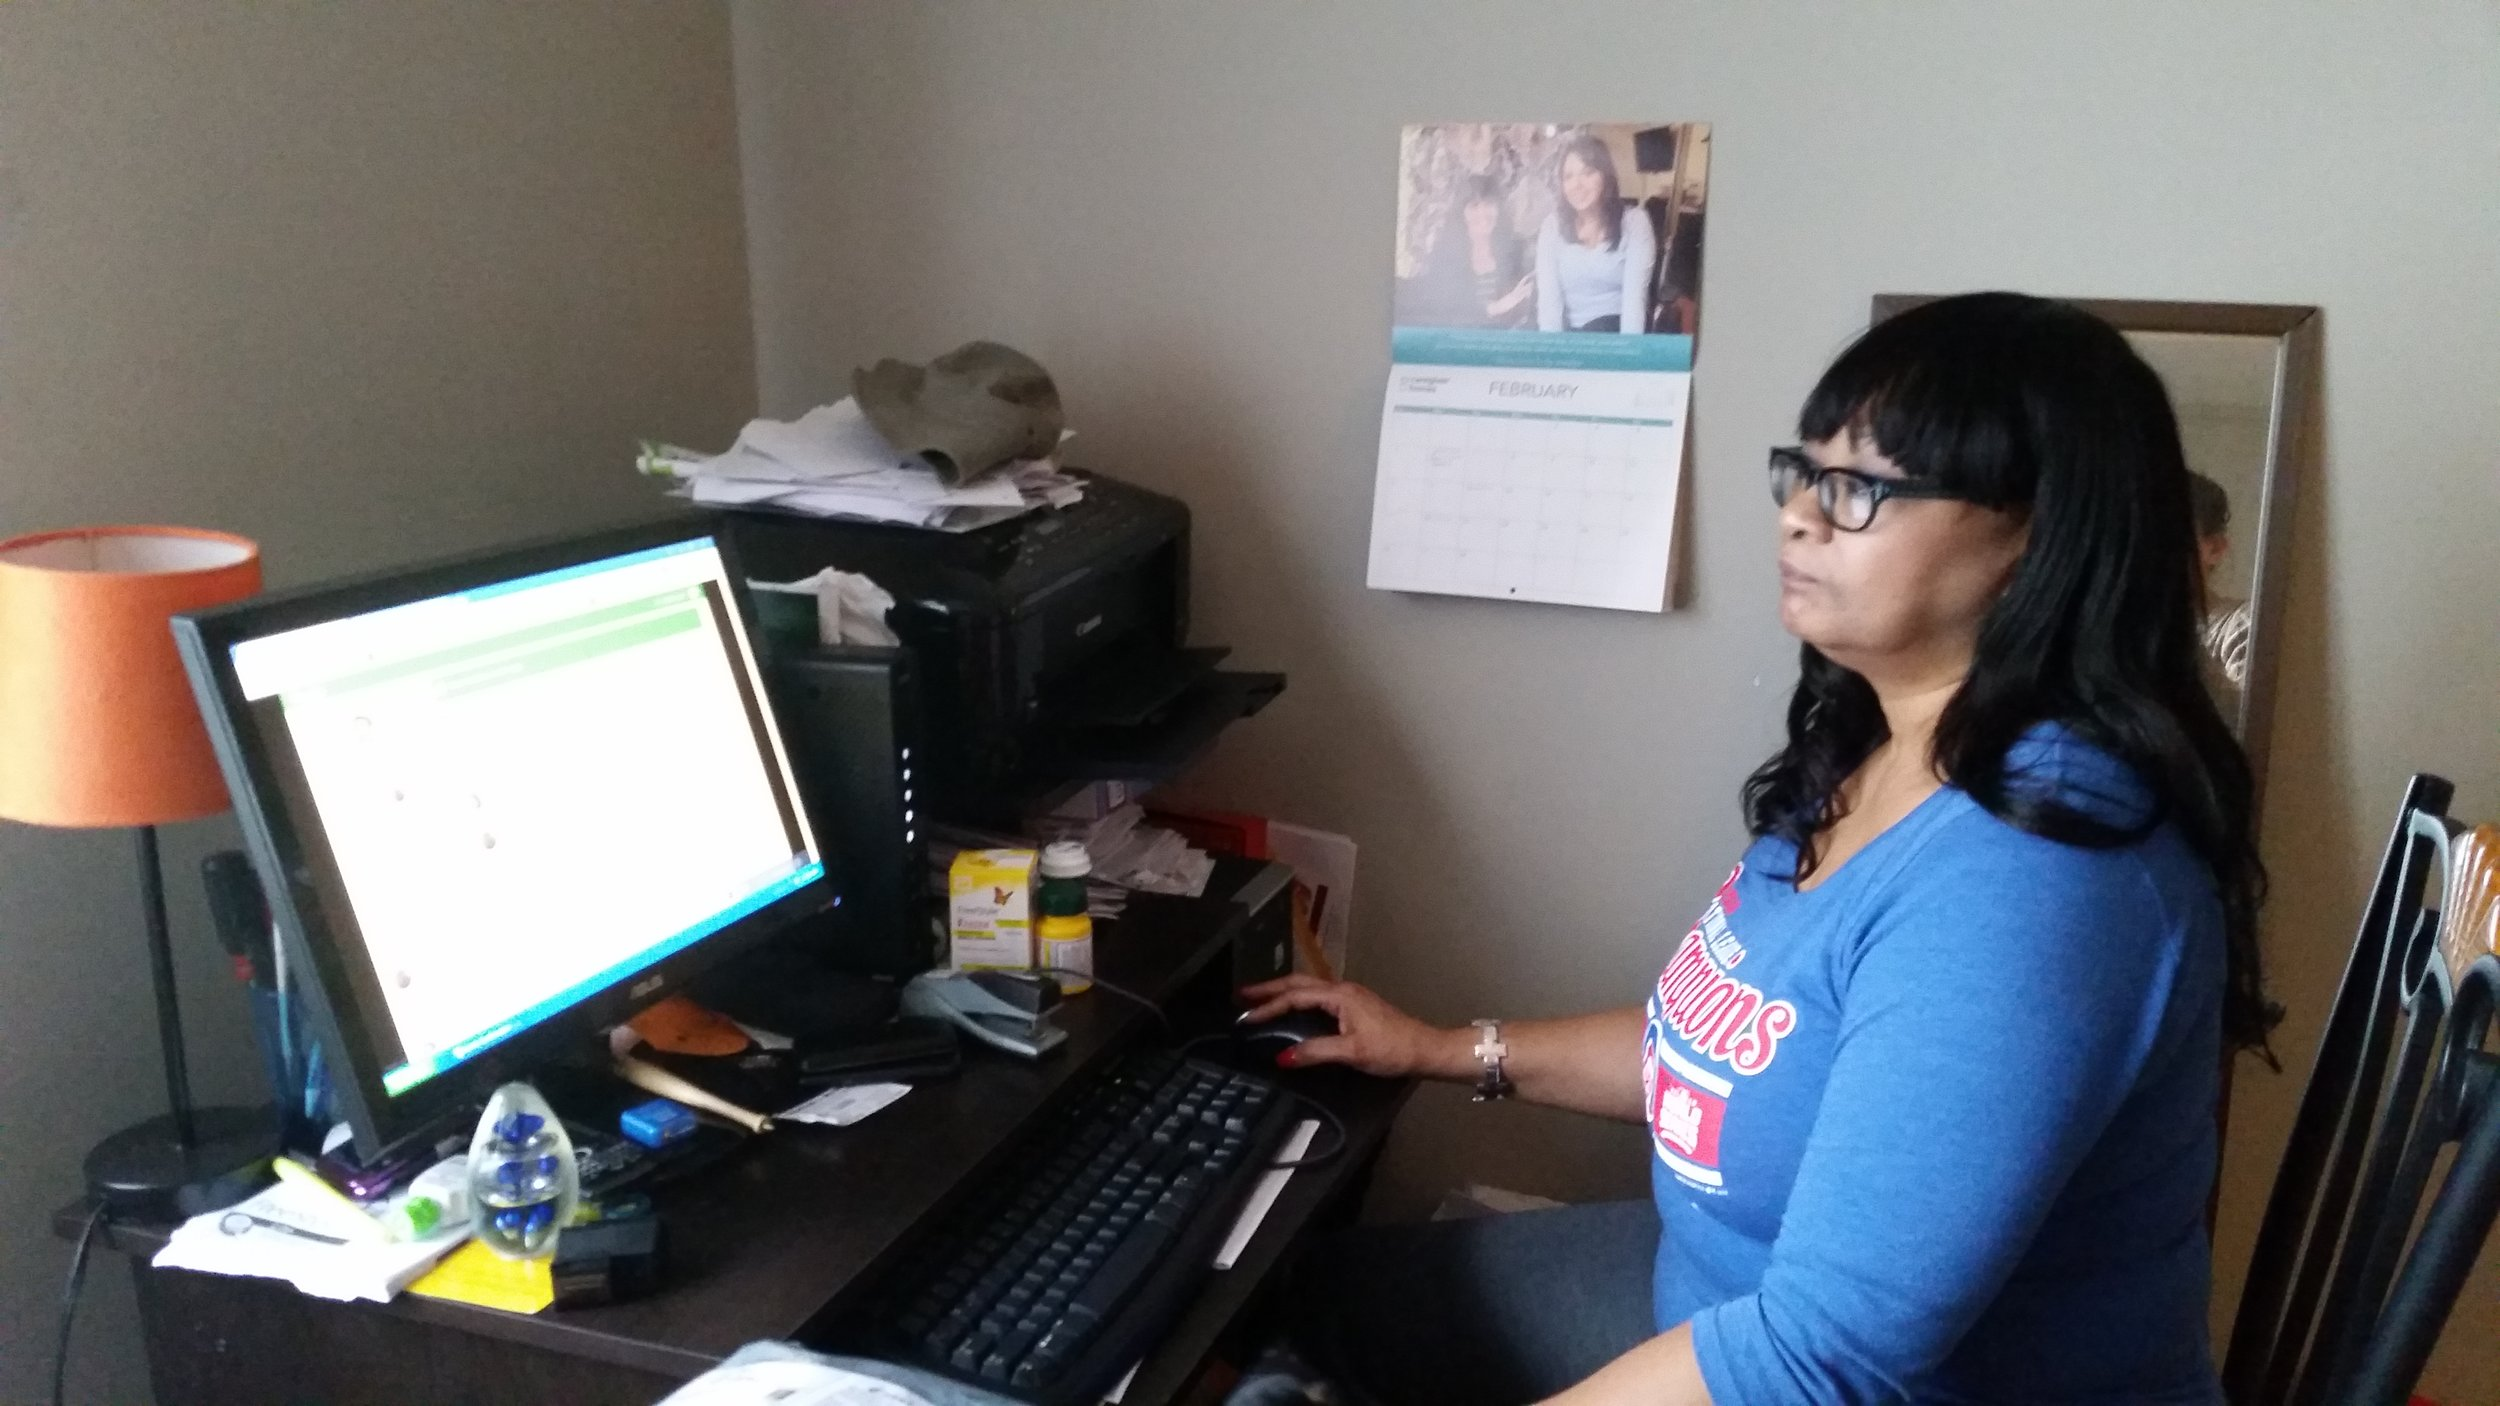 This caregiver takes care of her mother and uses Vela on her computer.